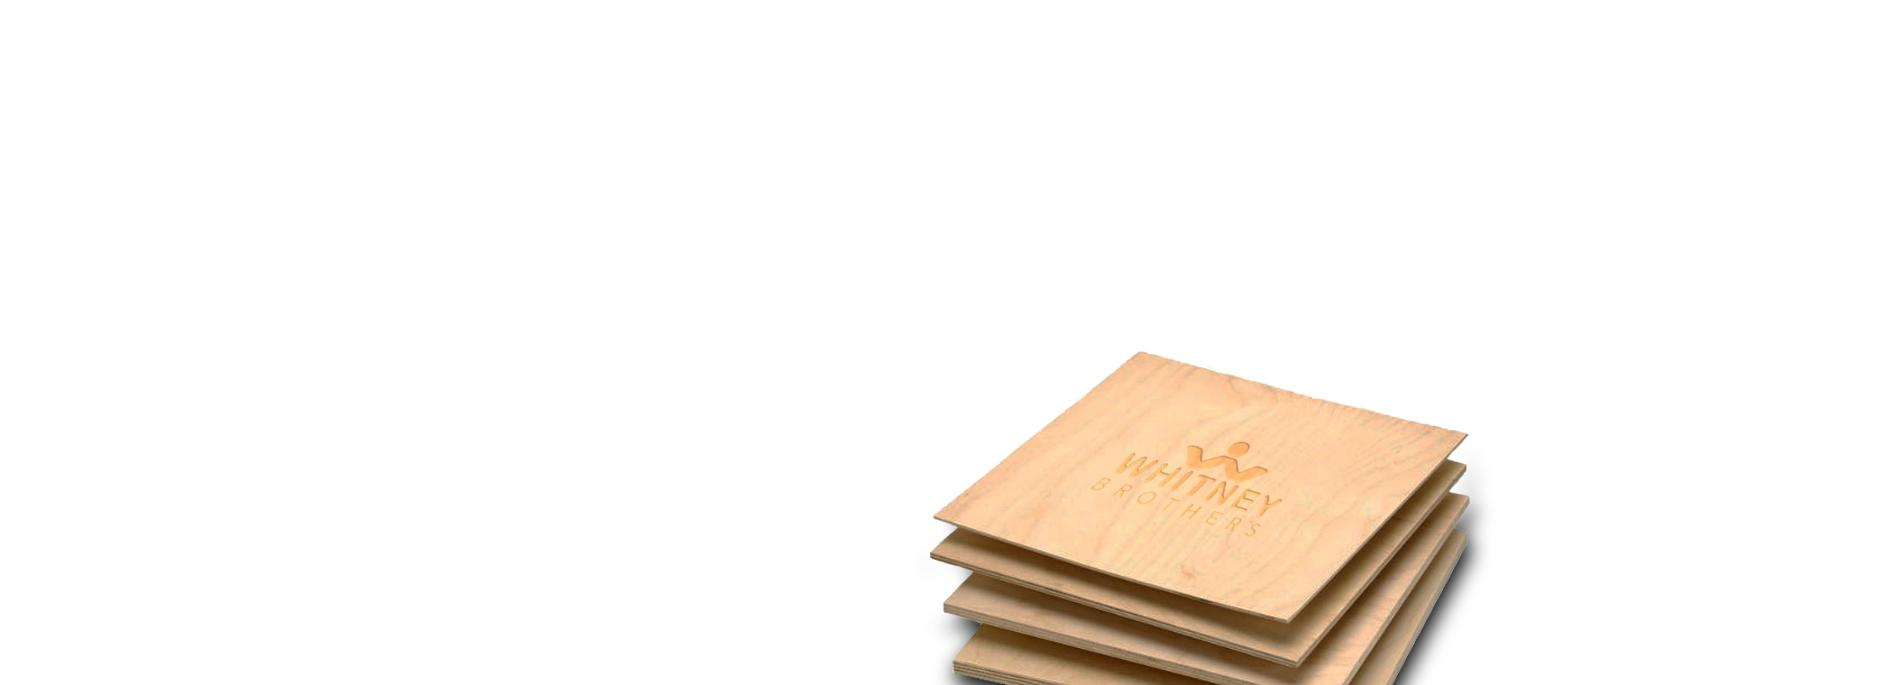 small square sheets of wood with Whitney Brothers logo imprinted